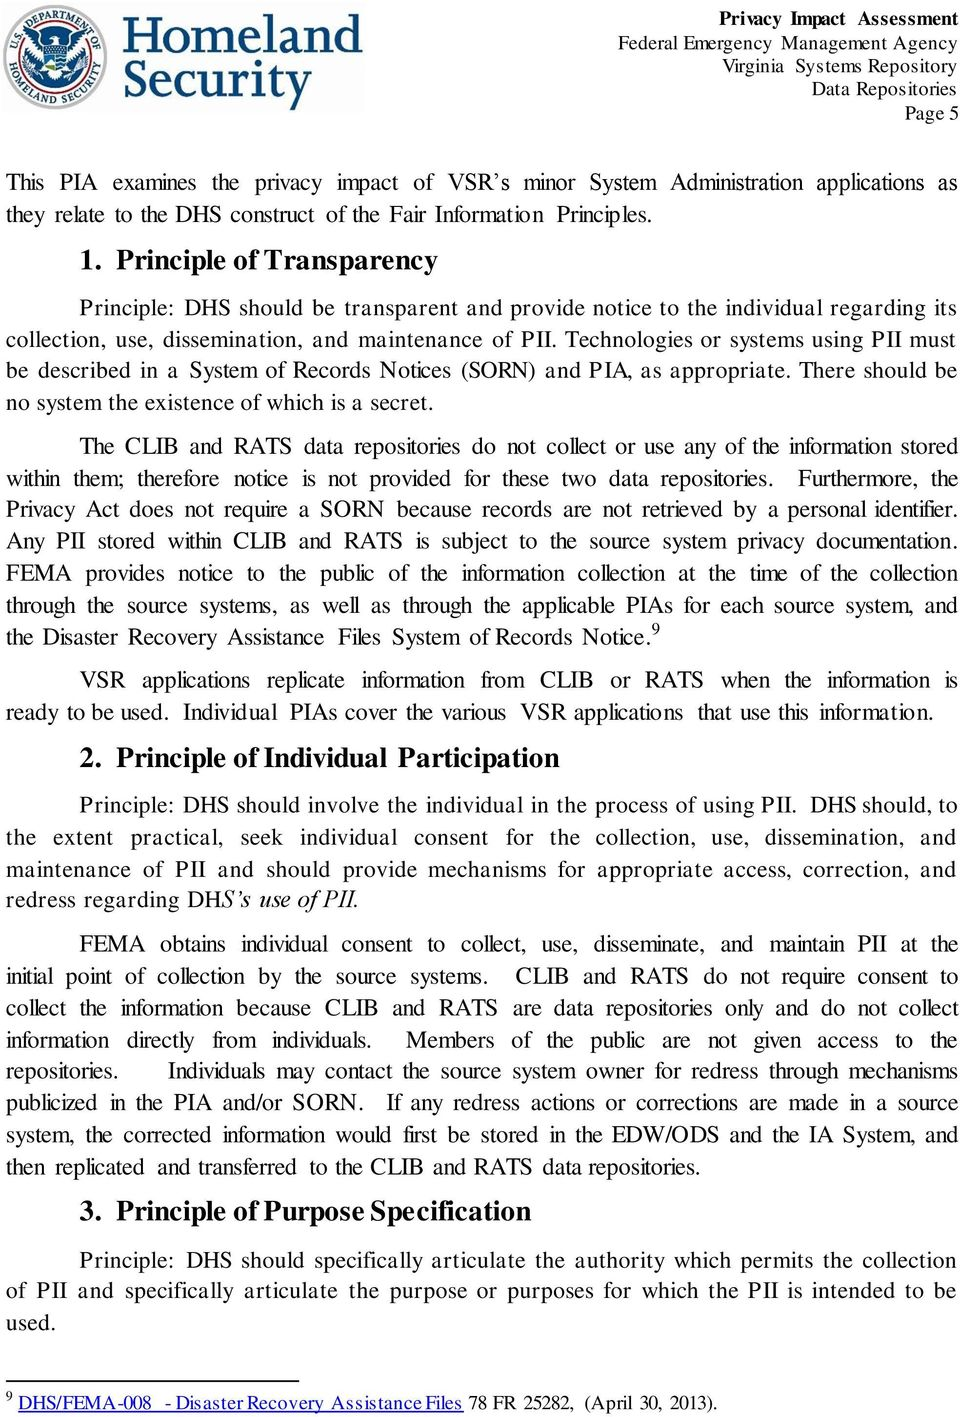 Technologies or systems using PII must be described in a System of Records Notices (SORN) and PIA, as appropriate. There should be no system the existence of which is a secret.